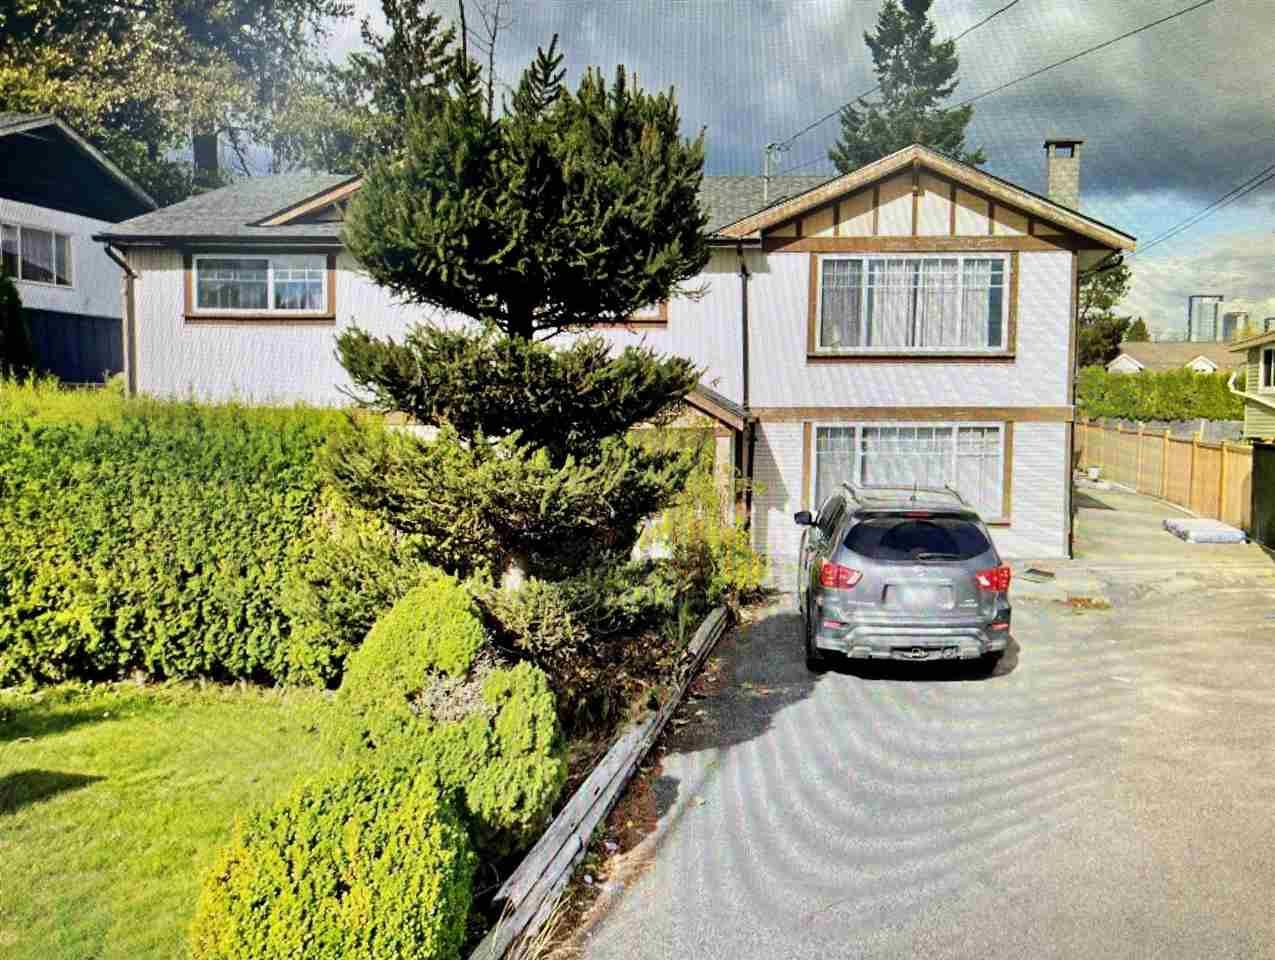 Main Photo: 13443 91 Avenue in Surrey: Queen Mary Park Surrey House for sale : MLS®# R2581895